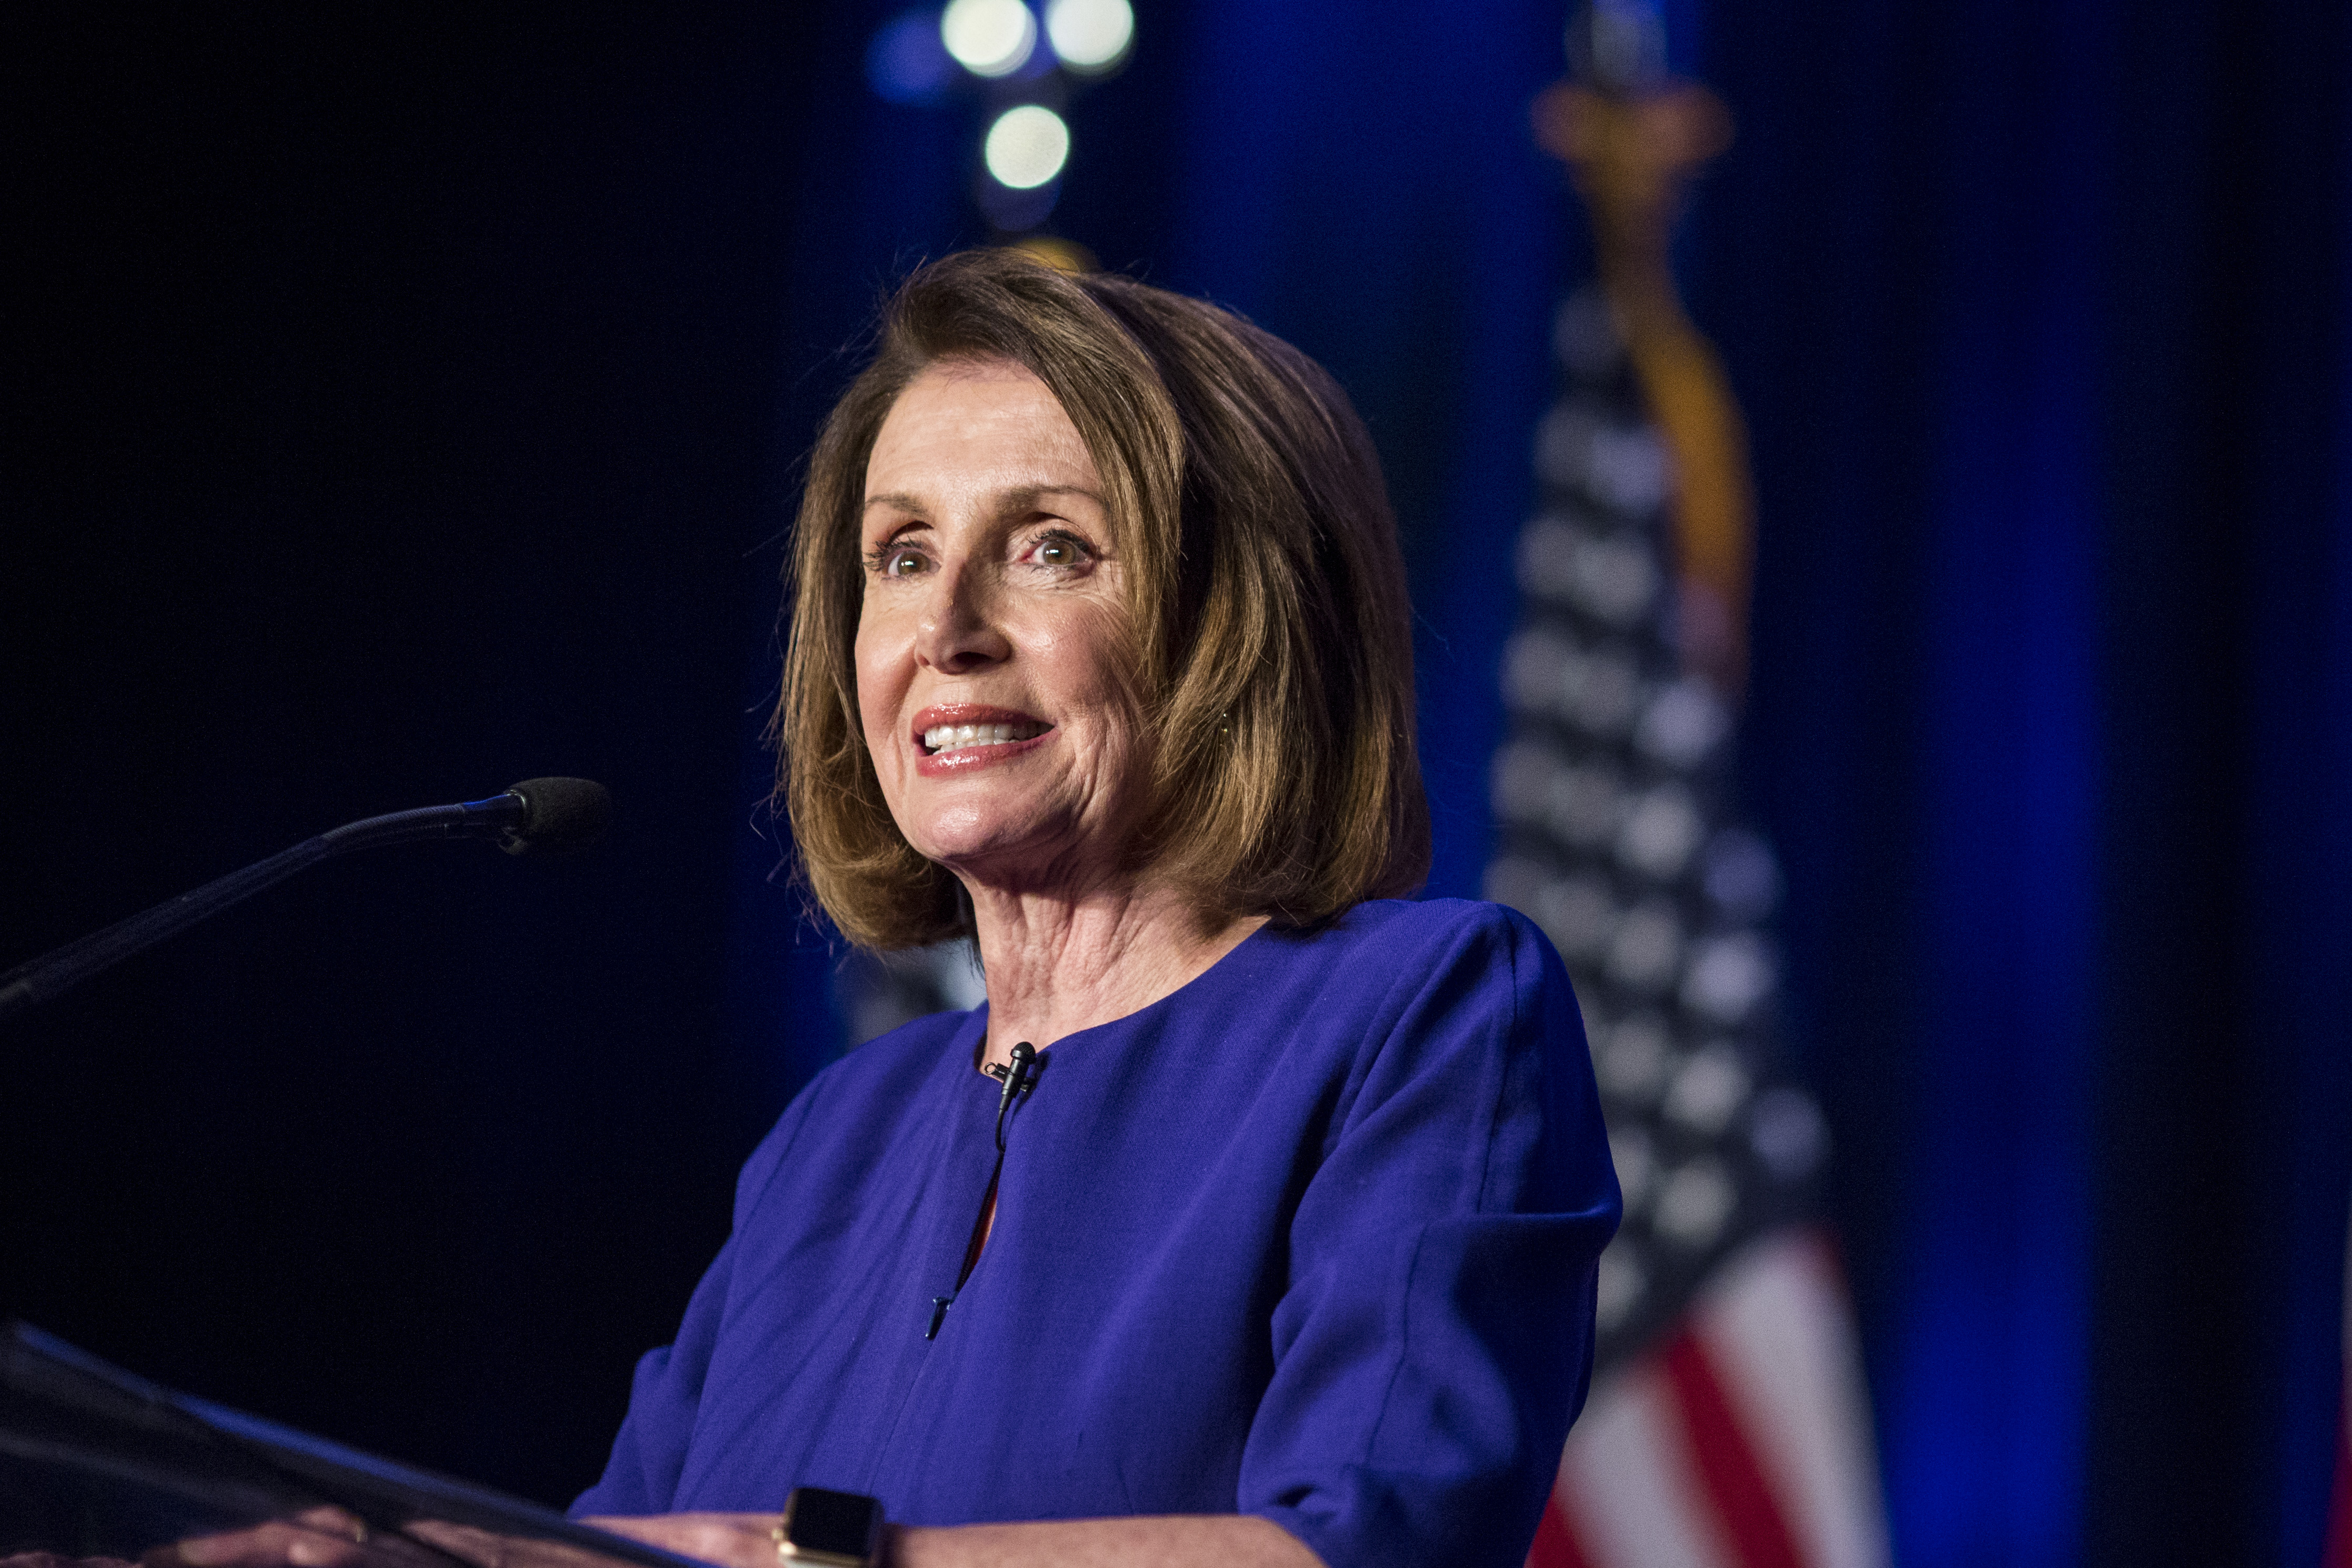 House Minority leader Nancy Pelosi also believes there will be significant action taken (Source: Zach Gibson/Getty Images)